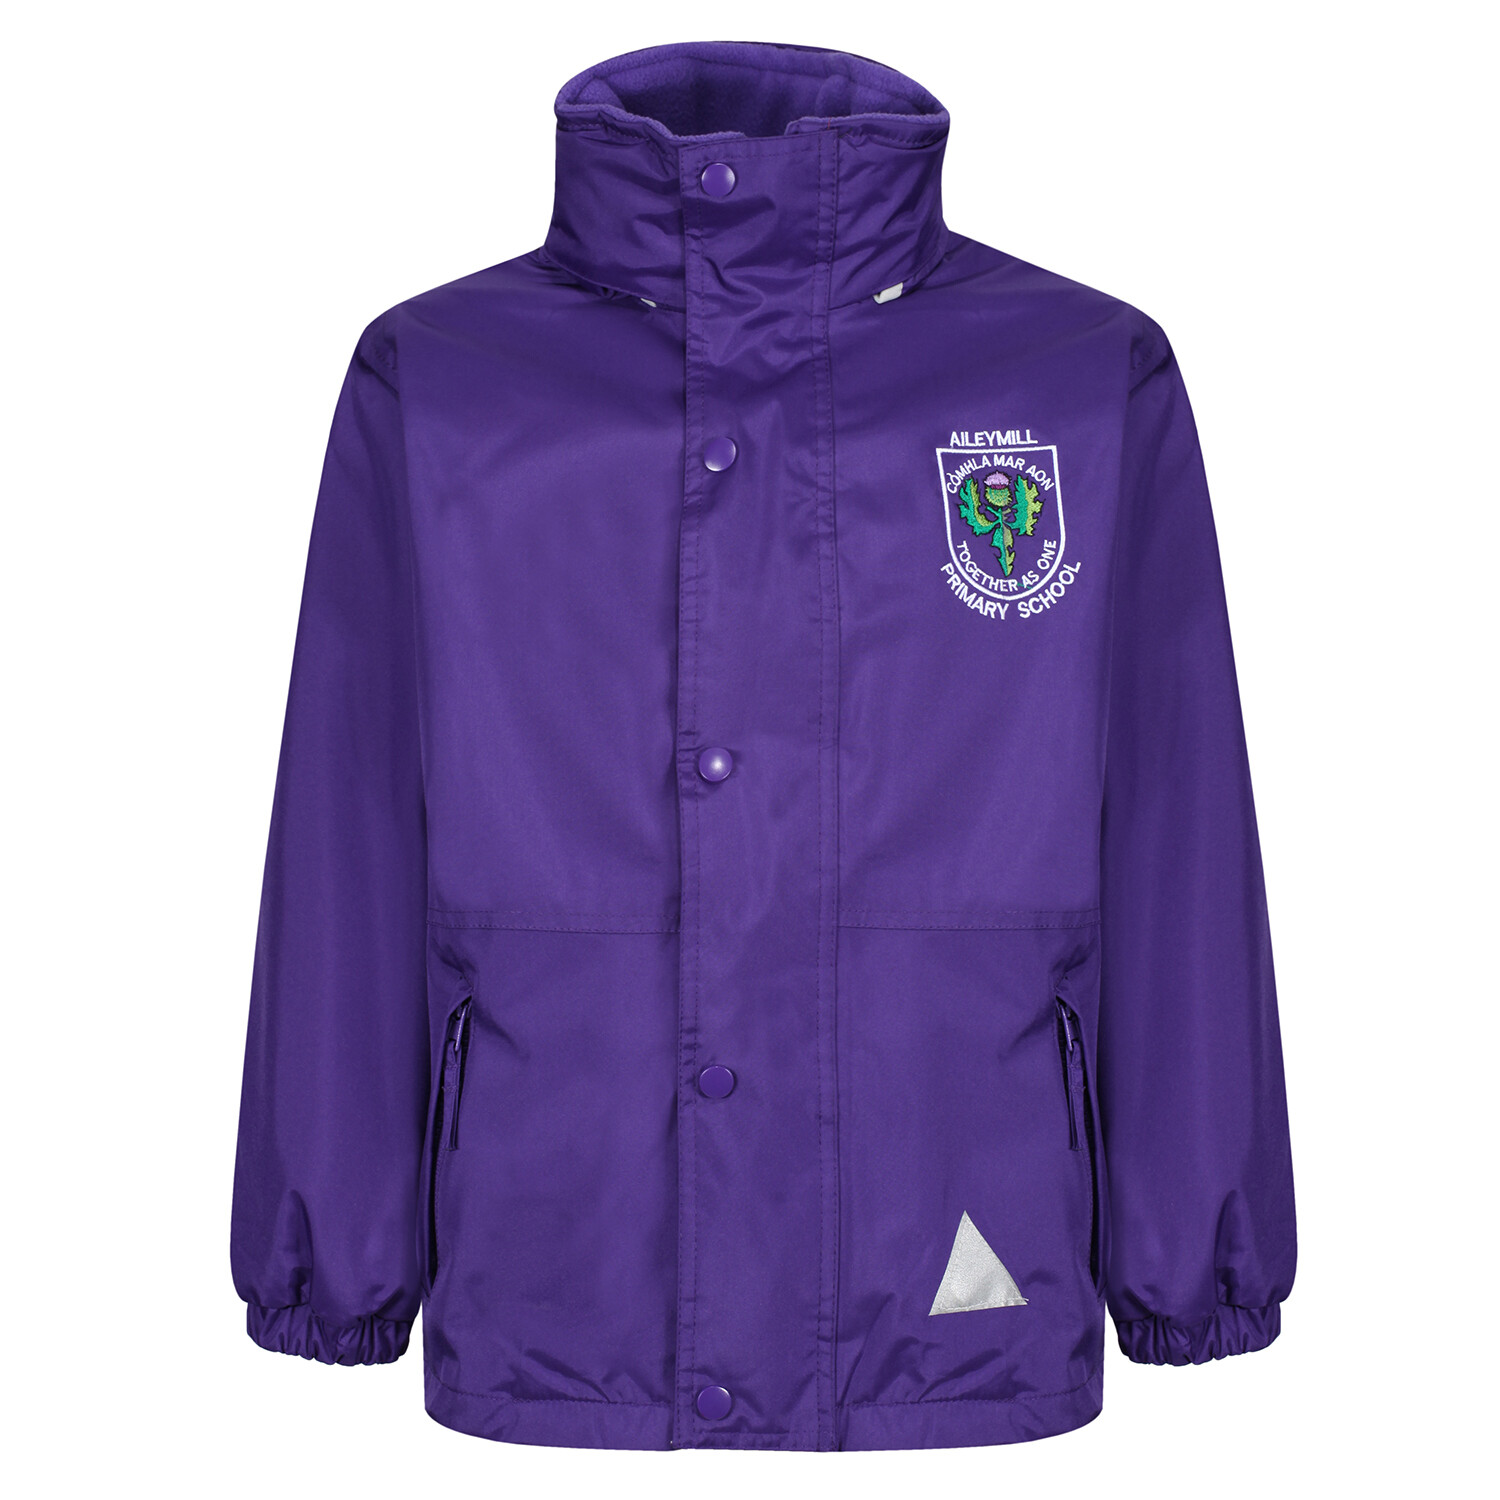 Aileymill Primary Heavy Rain Jacket (Fleece lined)